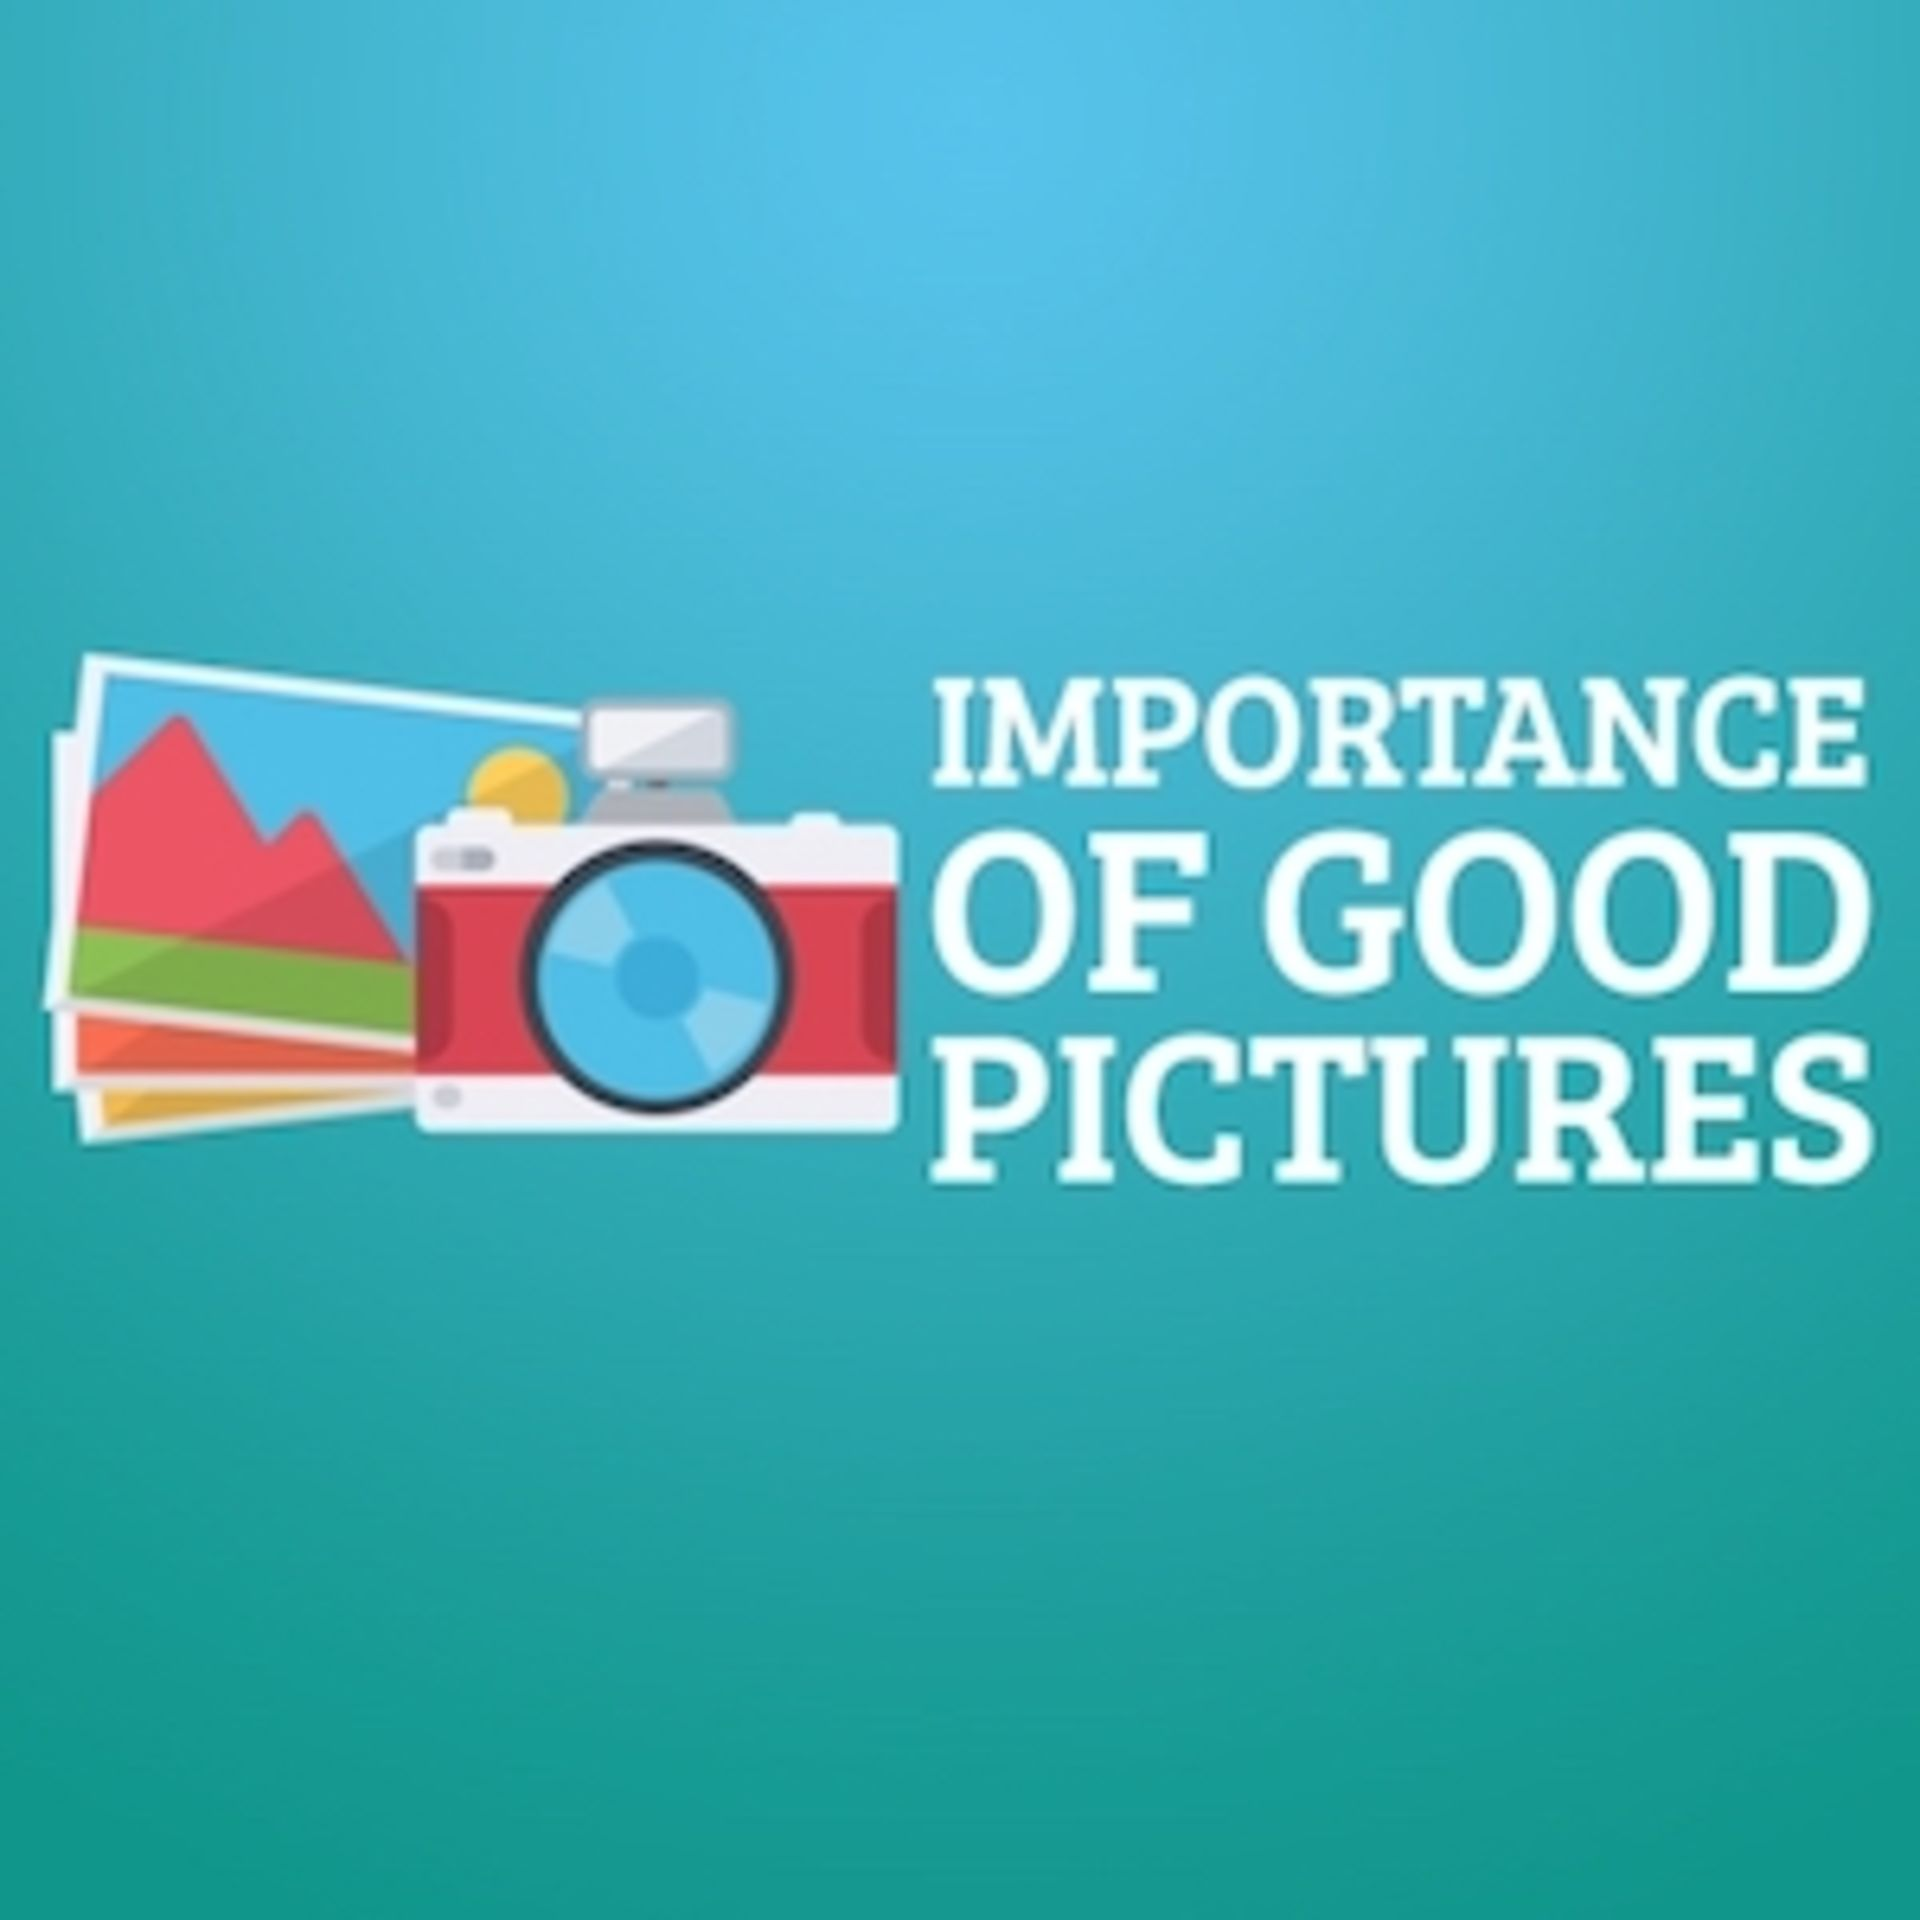 Importance of Good Pictures!